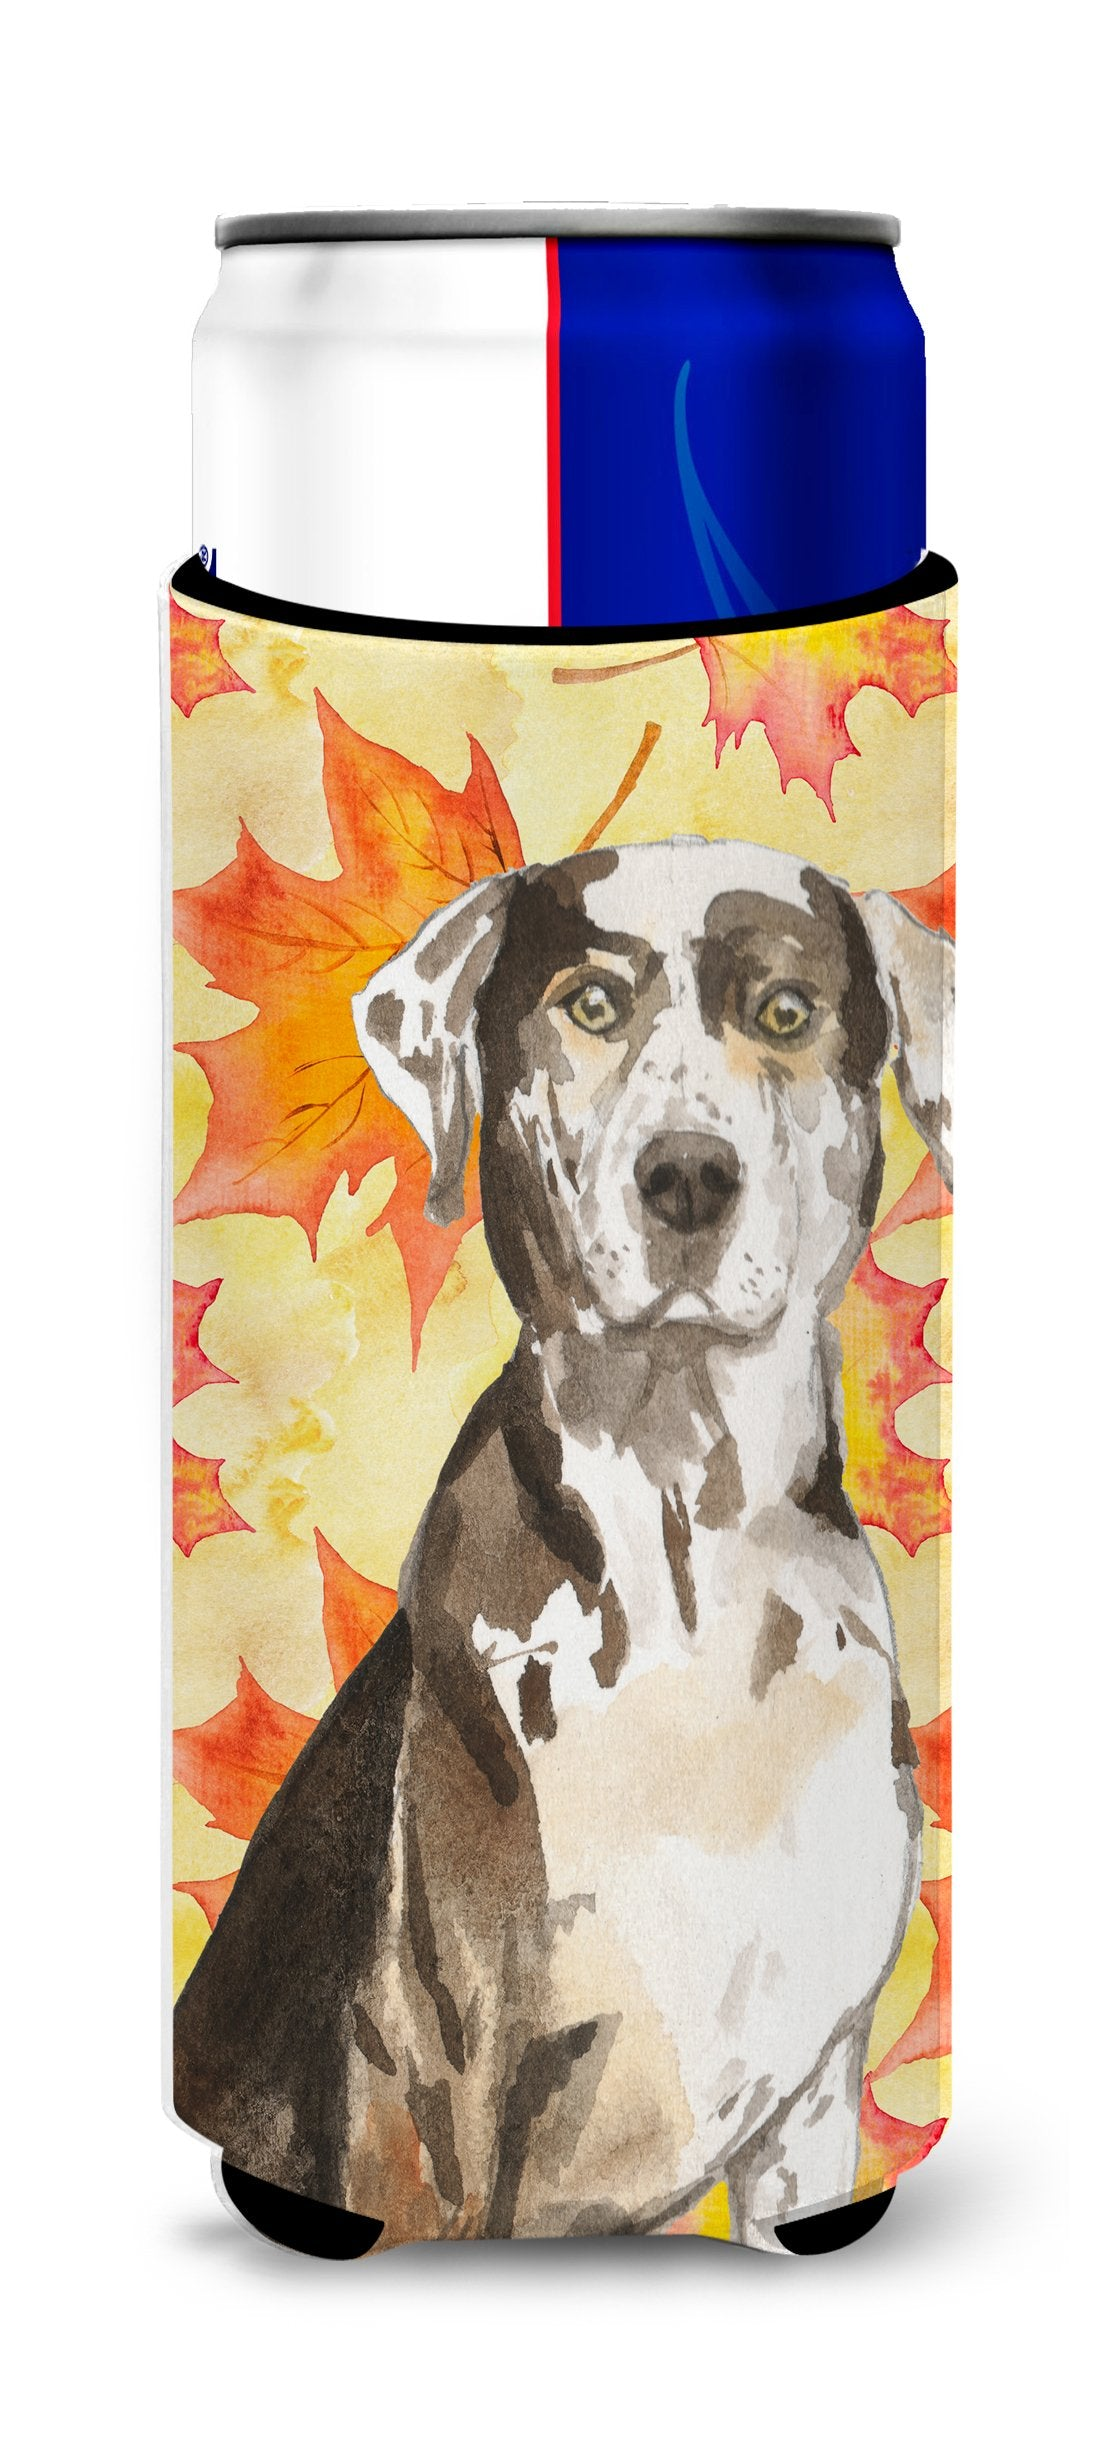 Fall Leaves Catahoula Leopard Dog Michelob Ultra Hugger for slim cans CK1845MUK by Caroline's Treasures